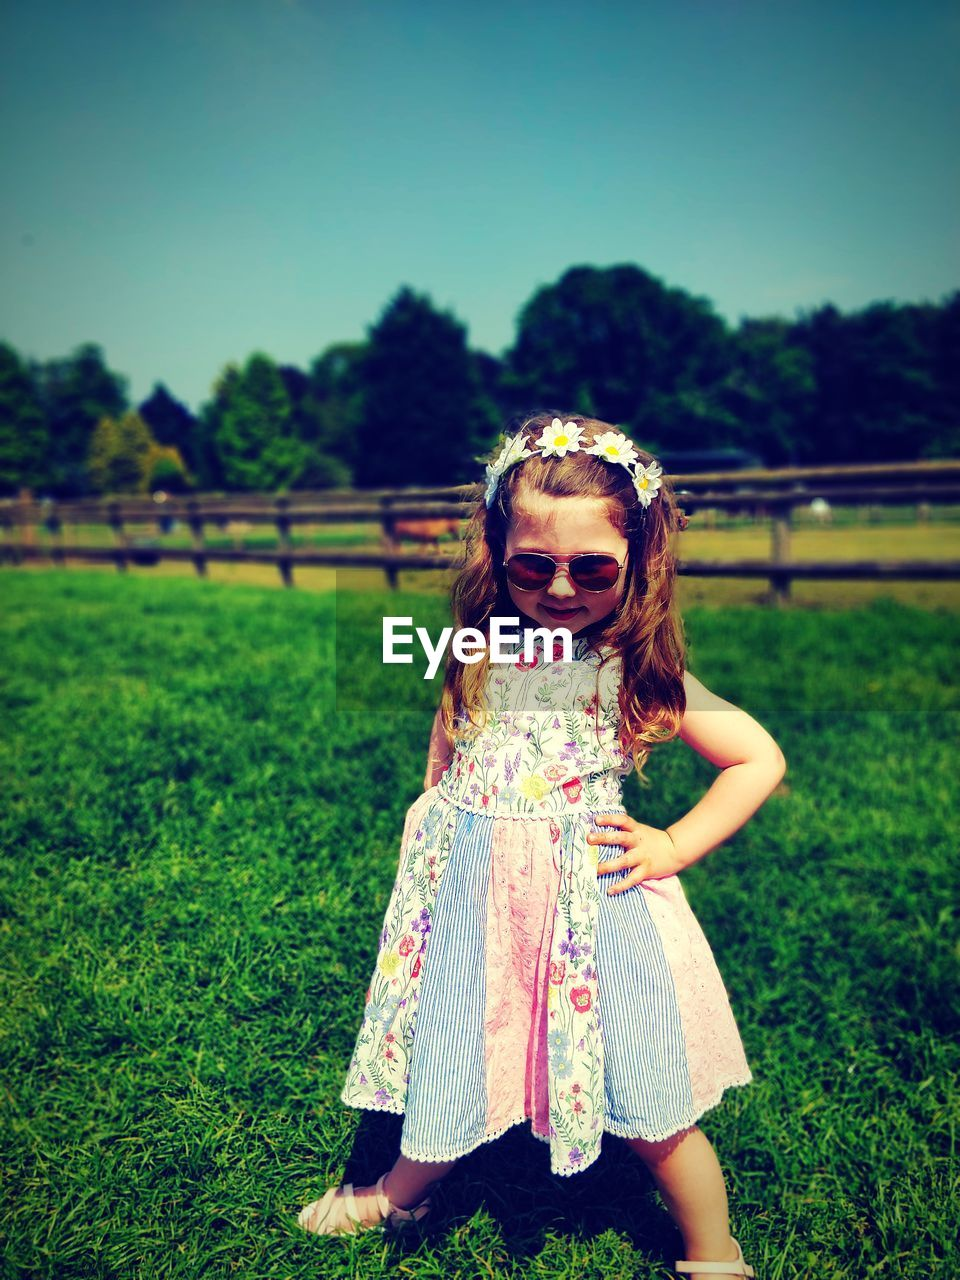 Full length portrait of cute fashionable girl wearing sunglasses and dress standing on grassy field during sunny day